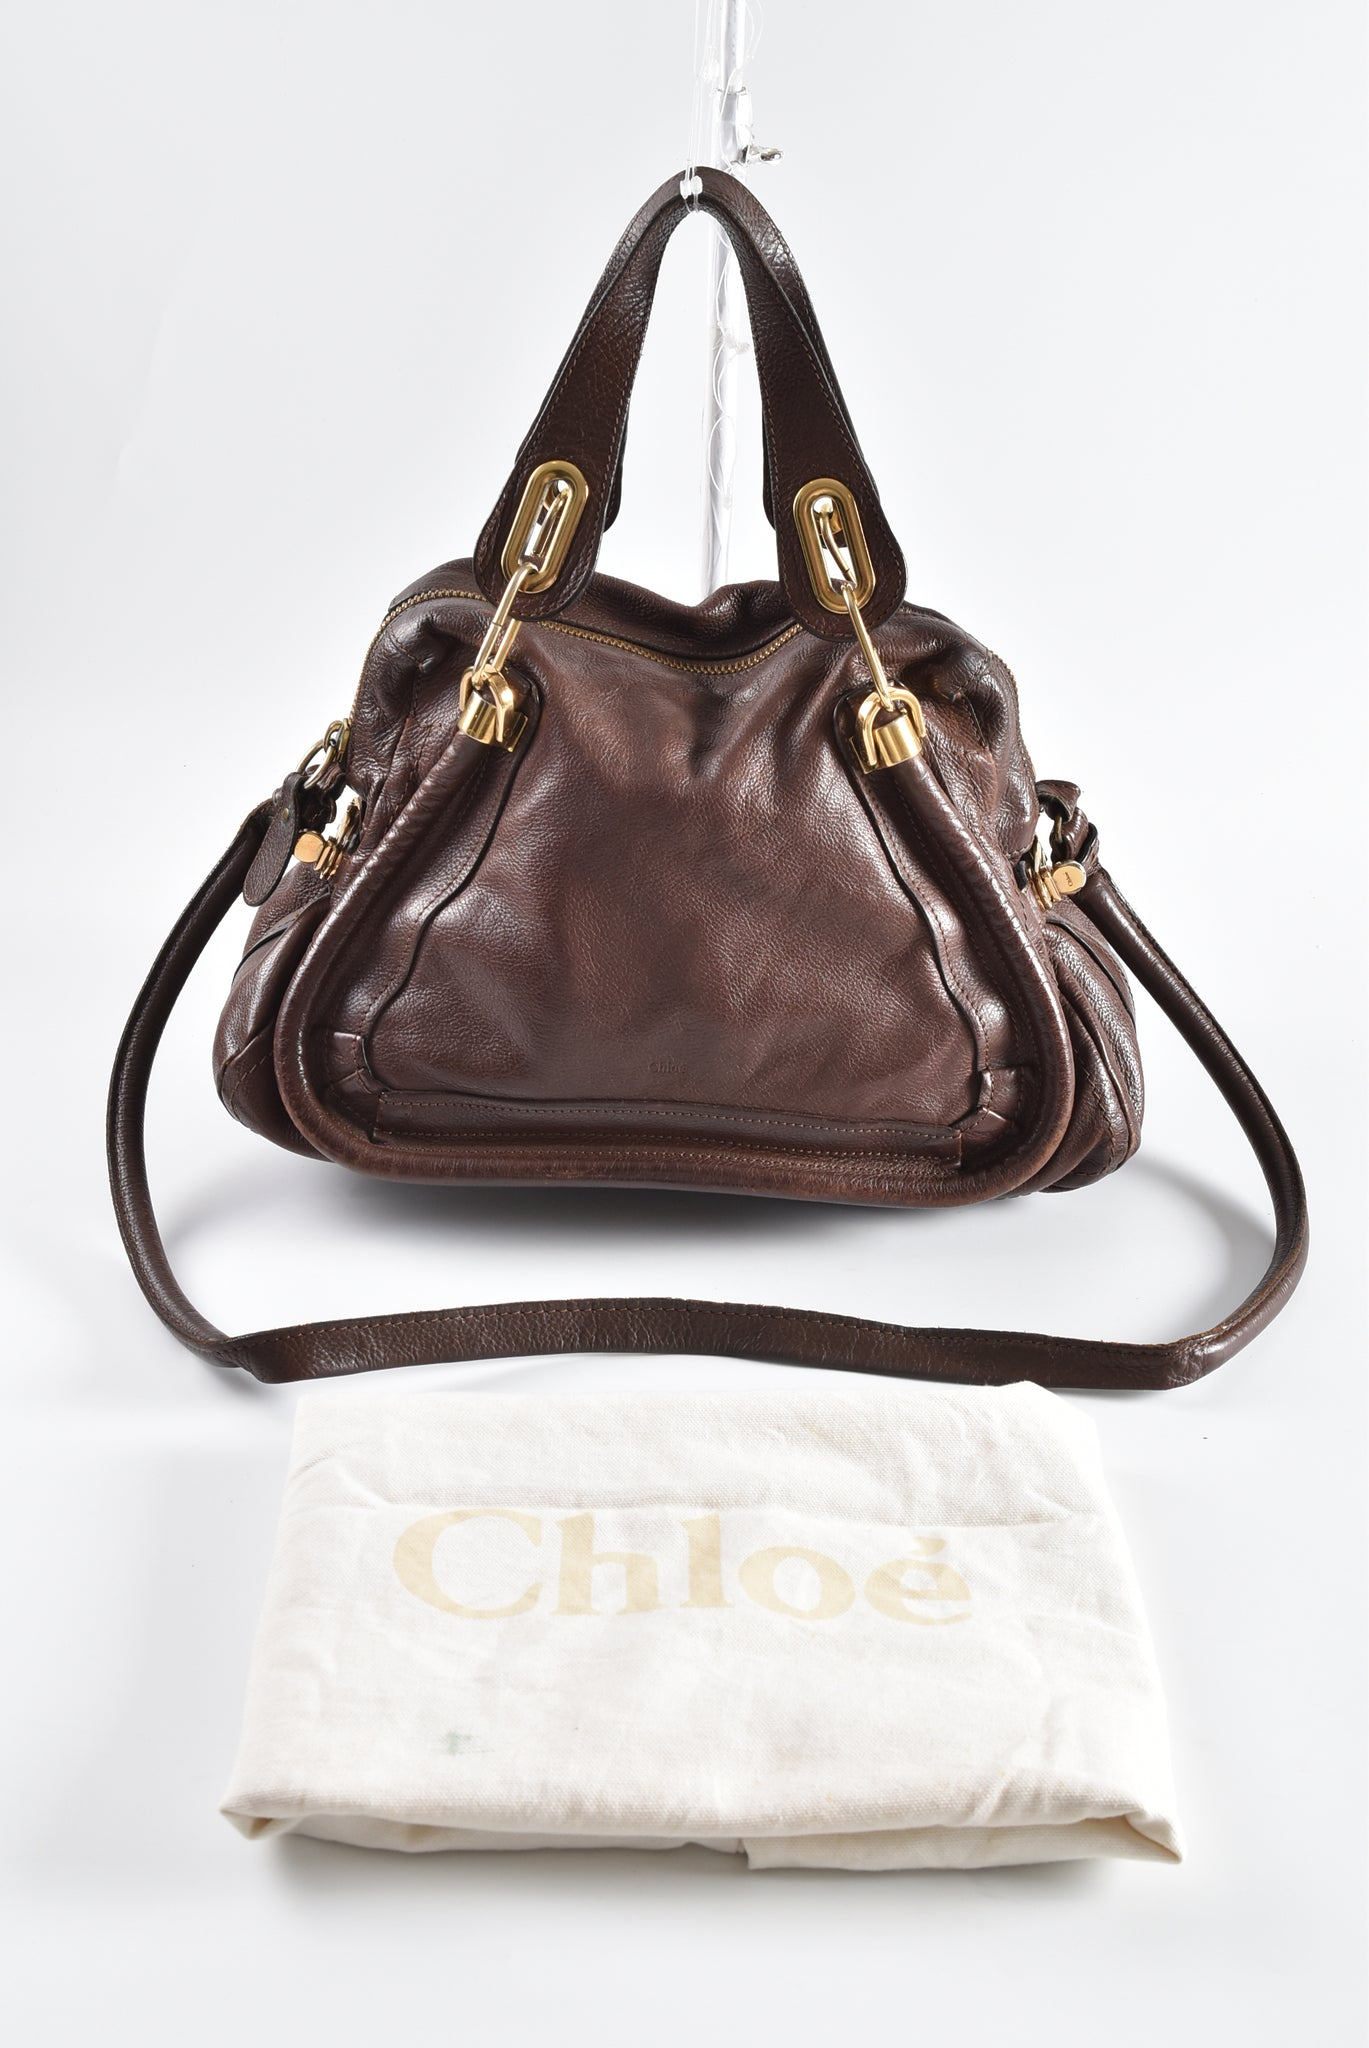 Chloé Paraty Brown Leather GHW Satchel Medium 041056 09 - Glampot